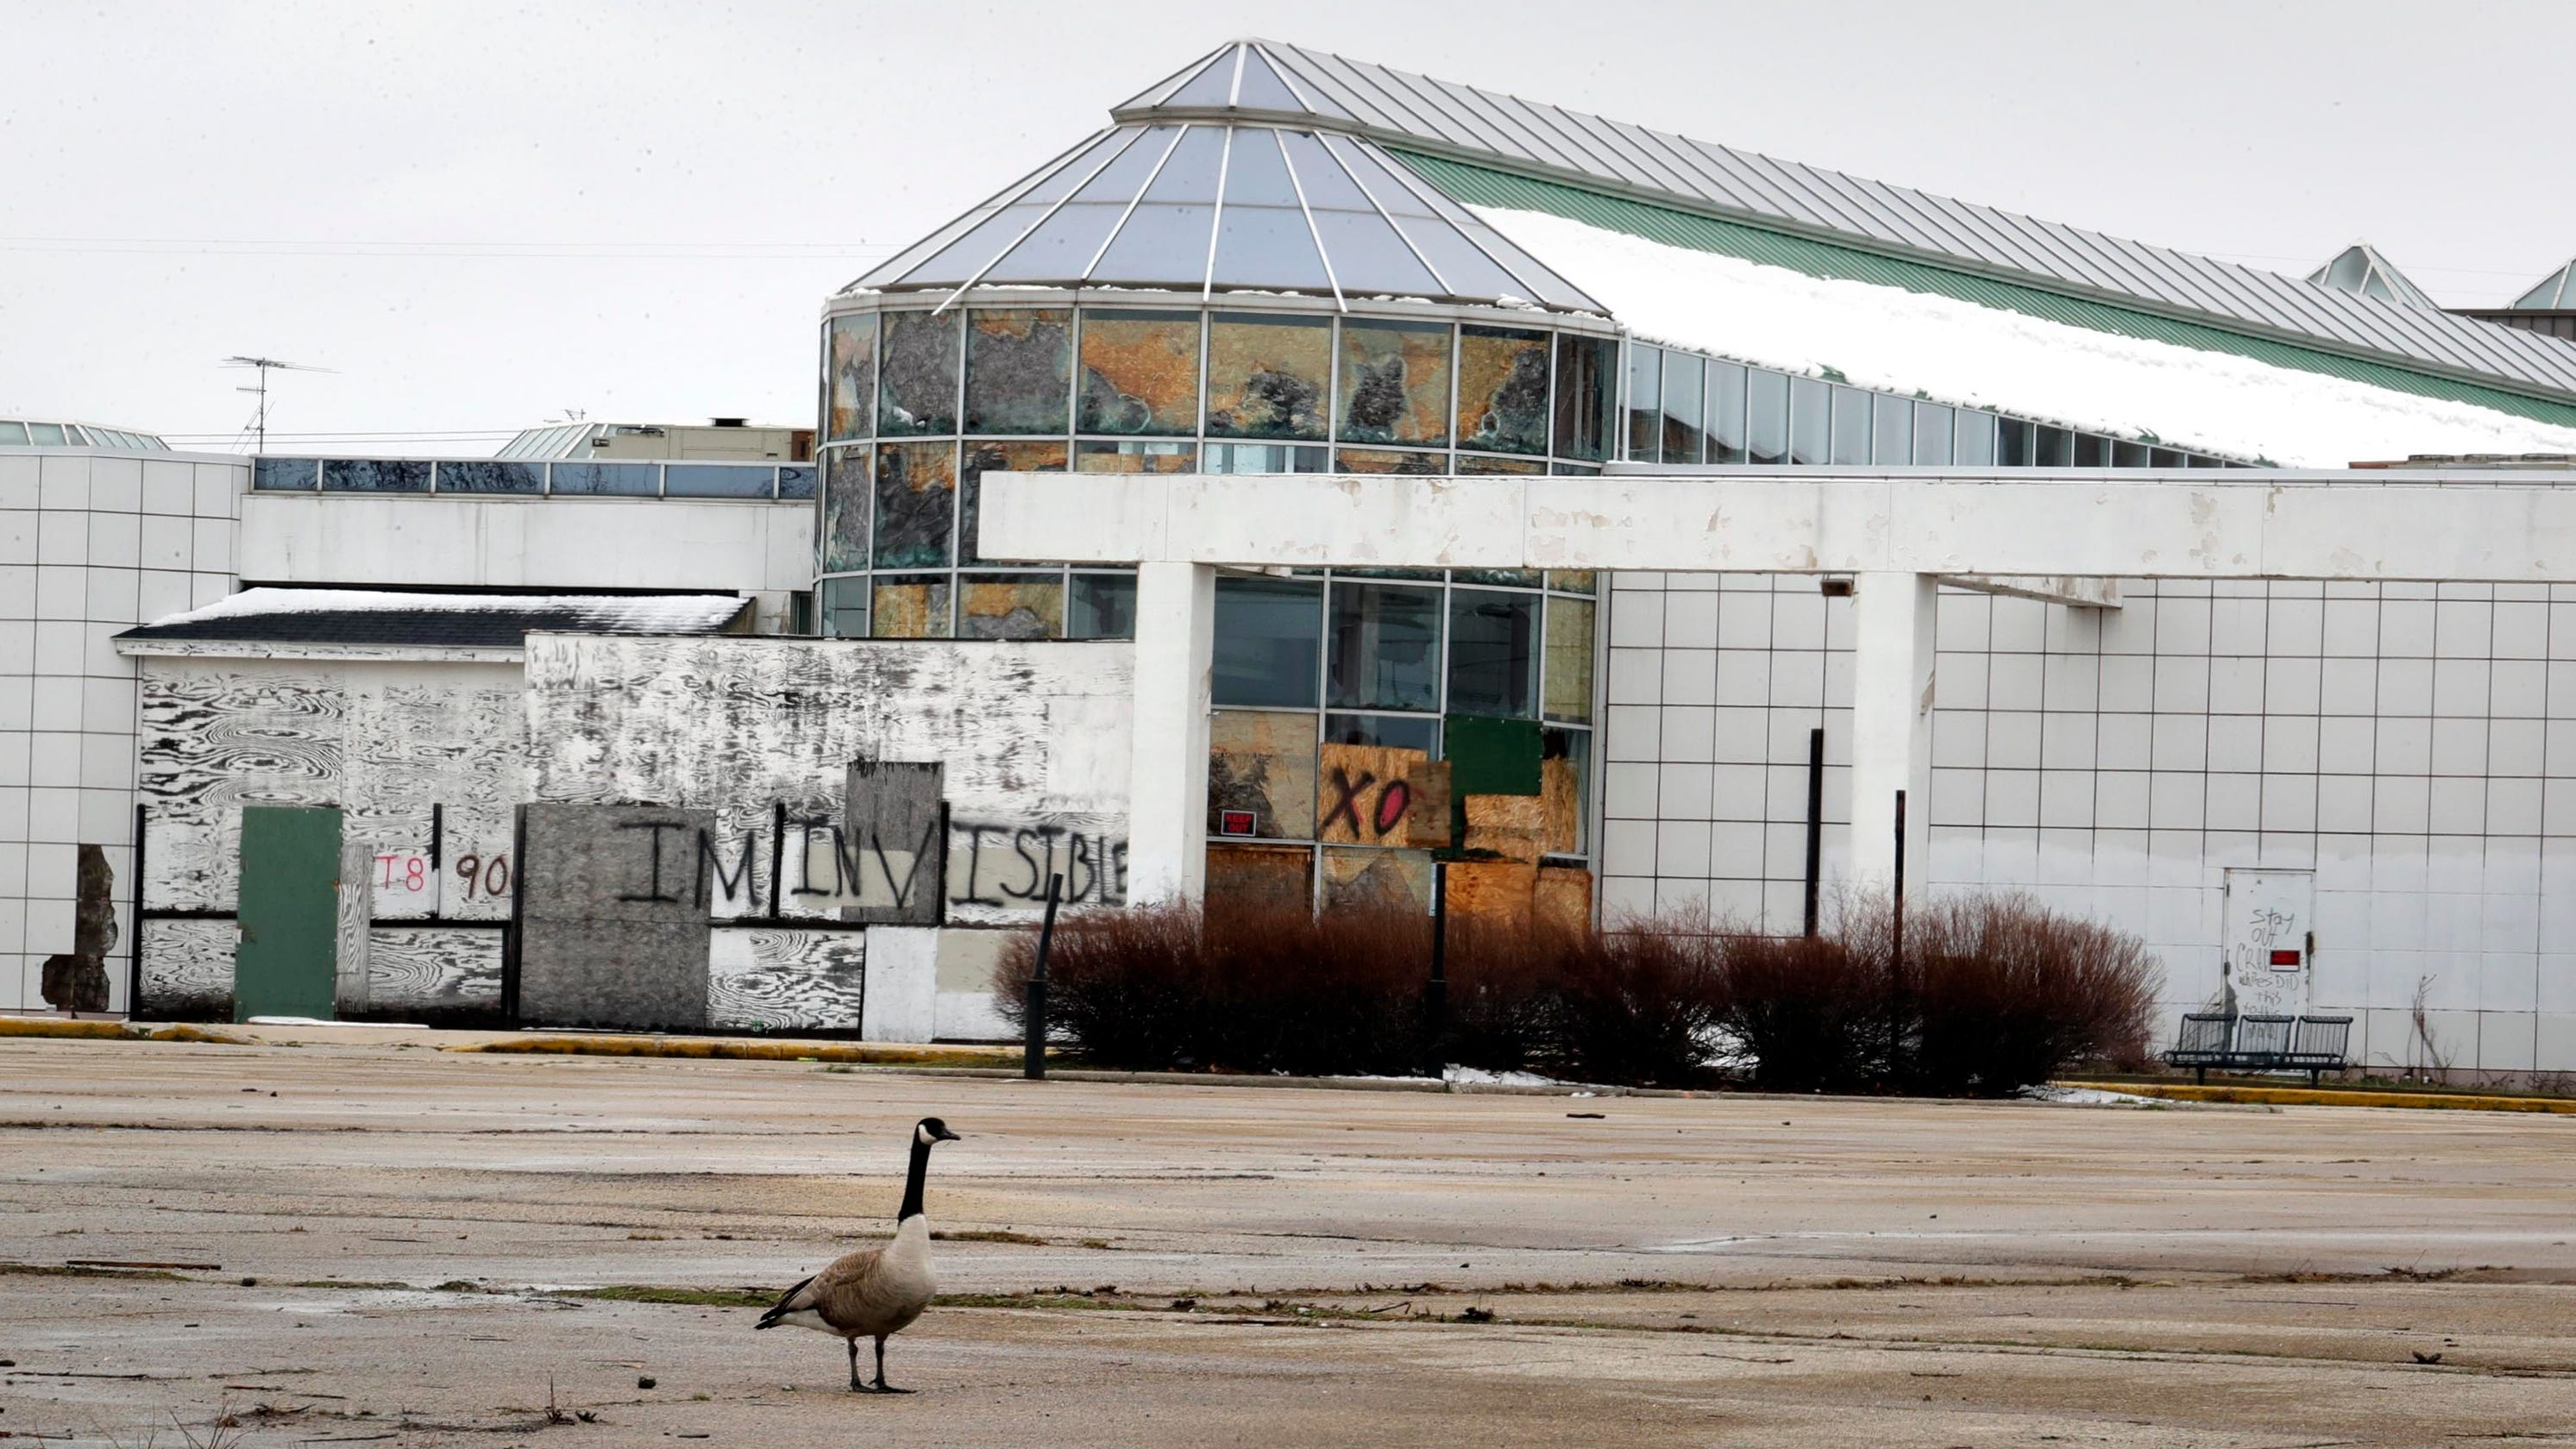 Northridge owner owes Milwaukee $175,000 in overdue property taxes